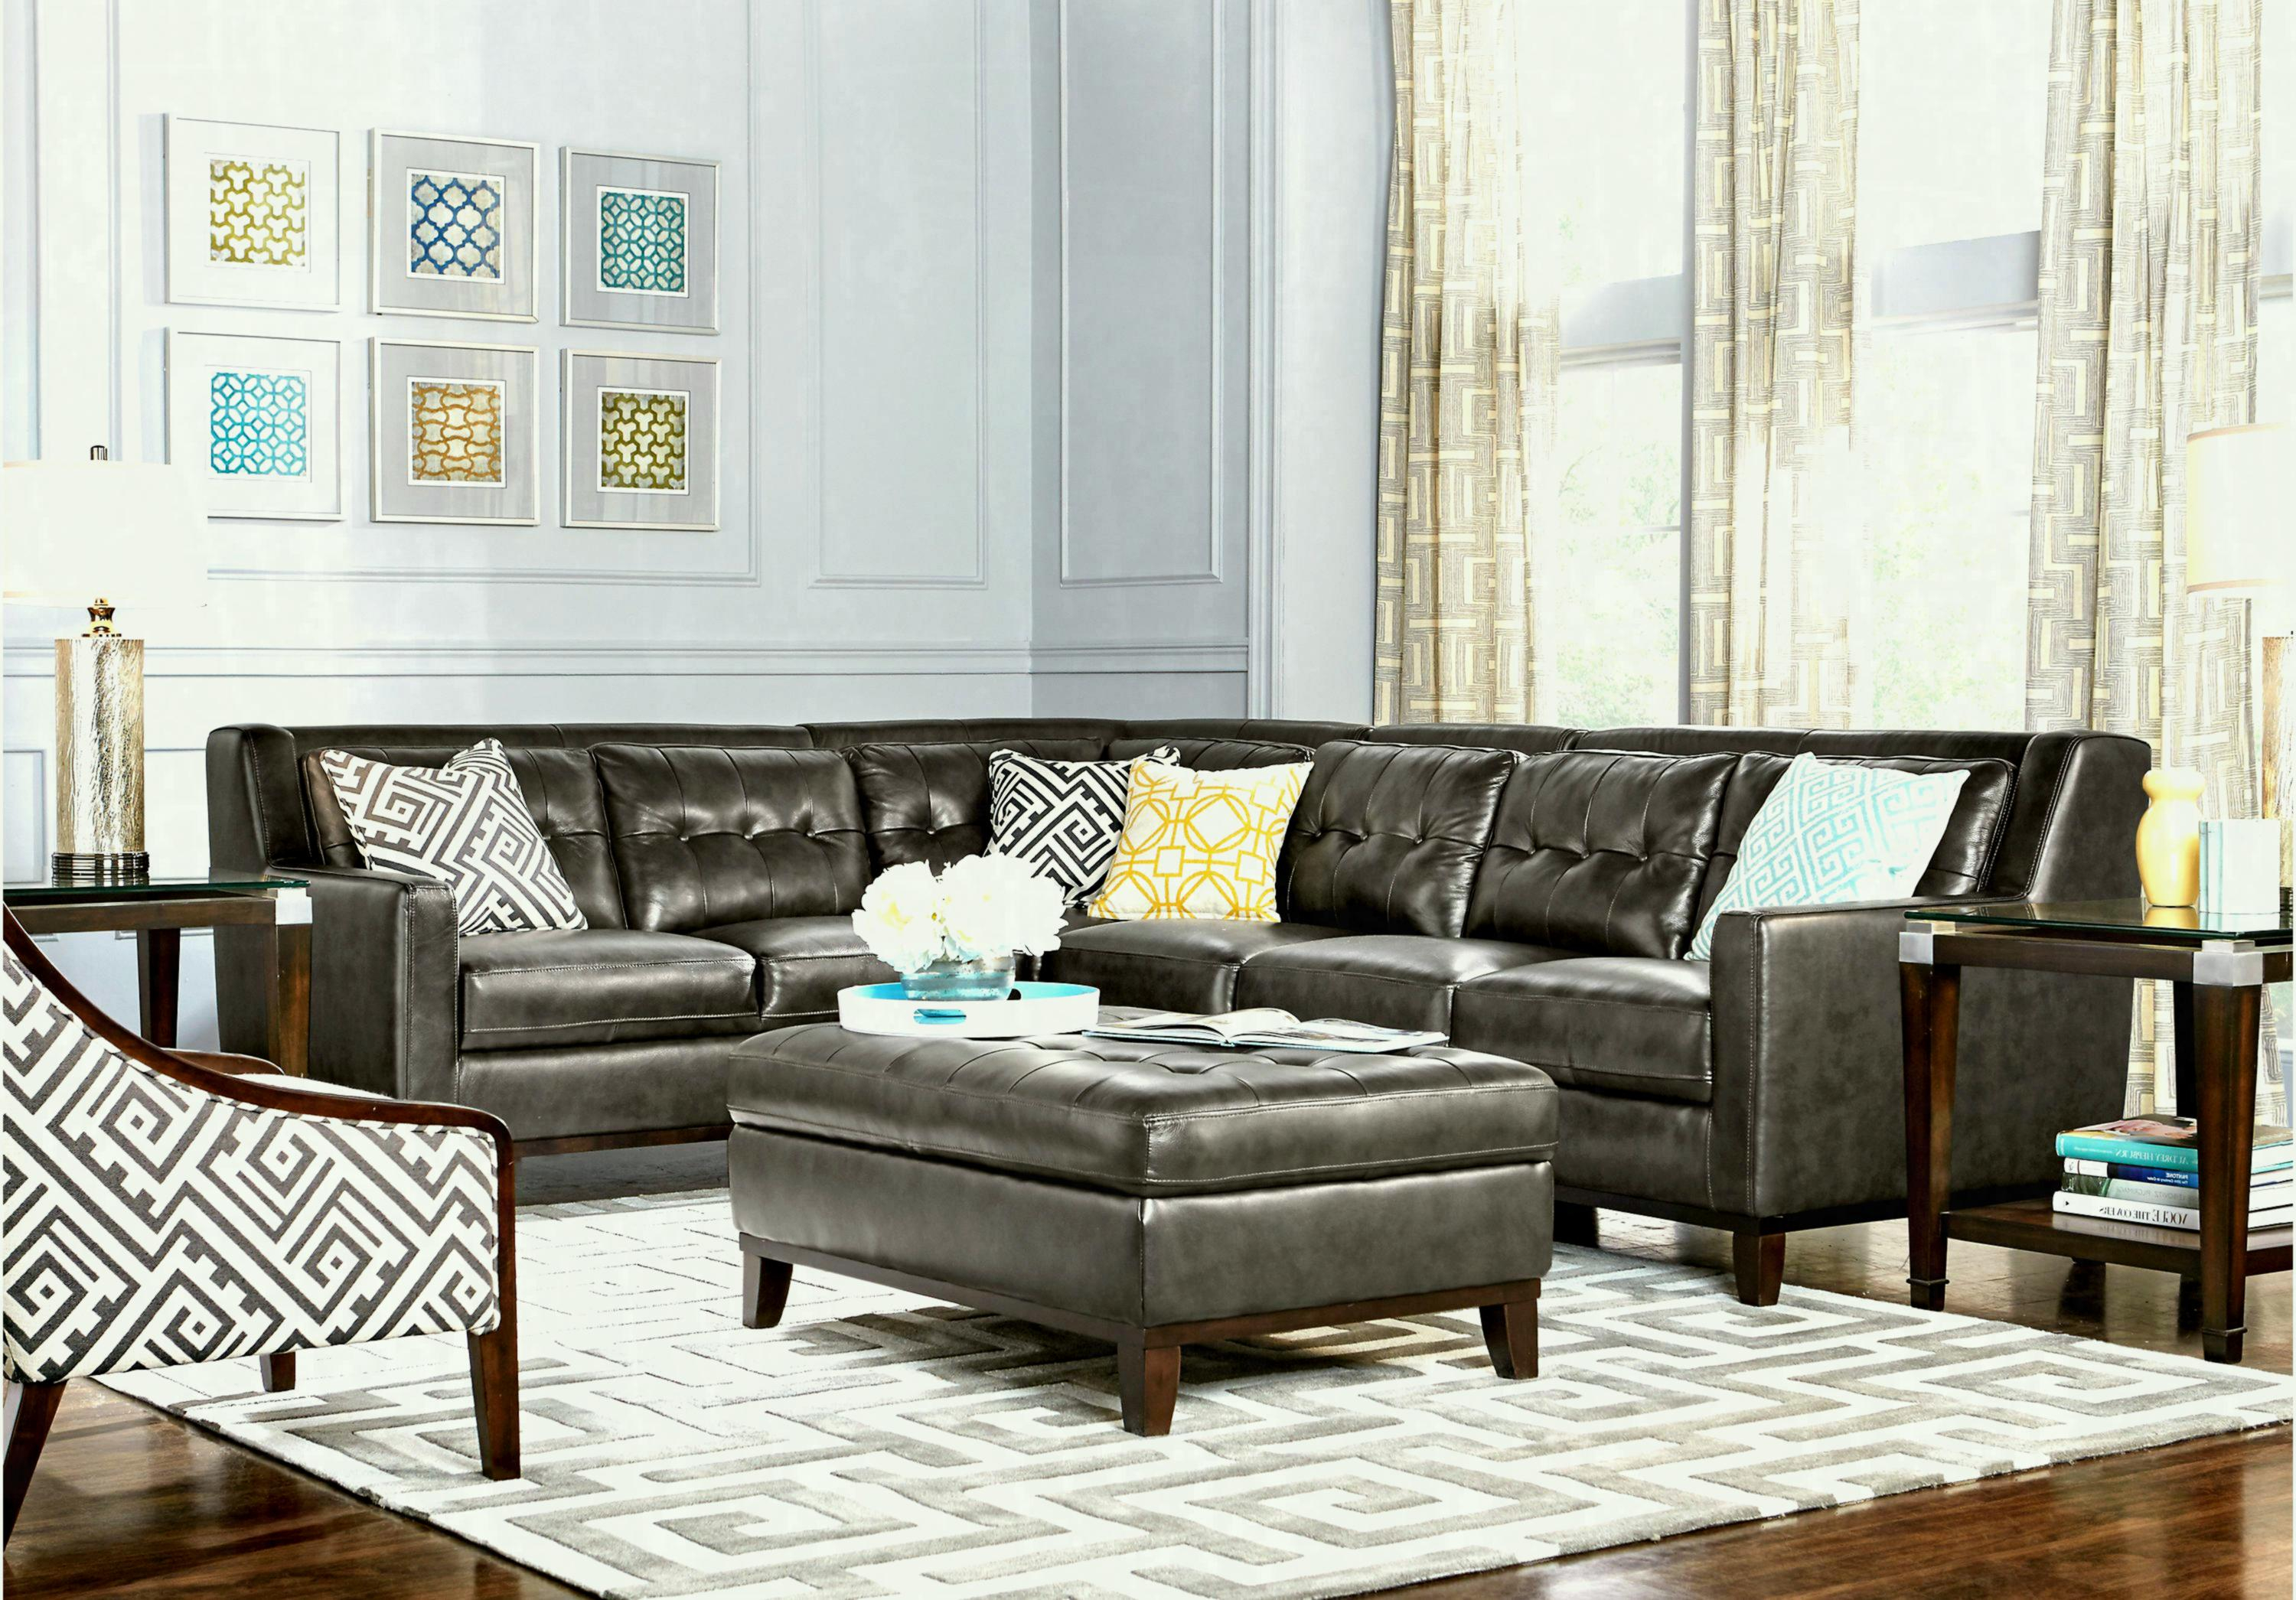 Living Room Ideas How To Renovate A Rooms To Go Leather Living Room with regard to 13 Awesome Concepts of How to Make Room To Go Living Room Set